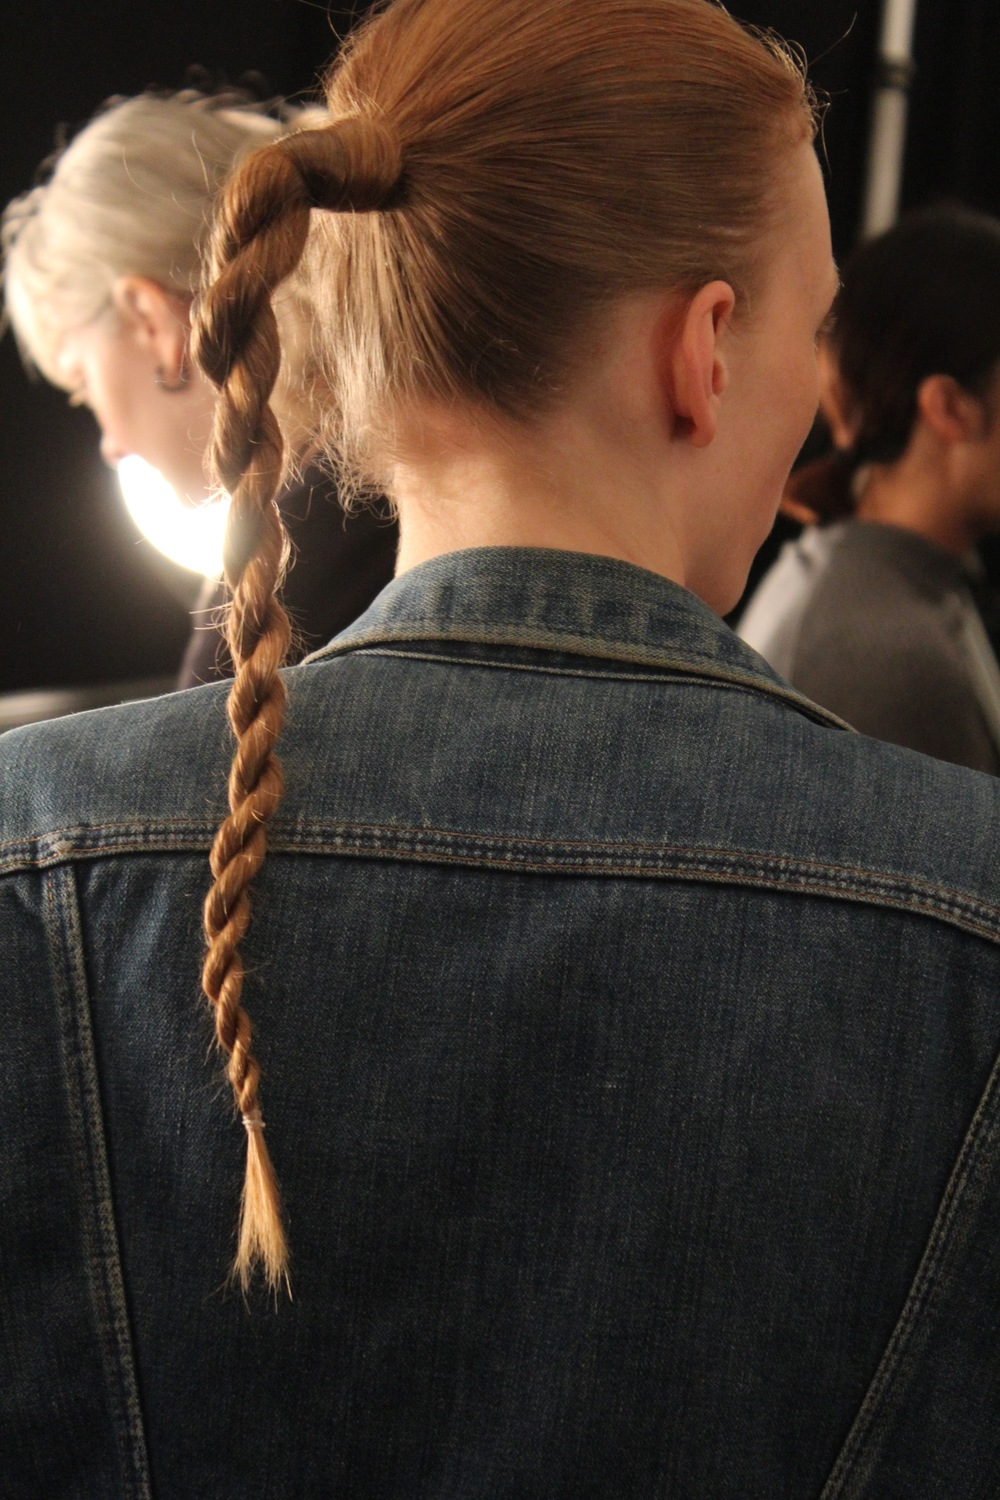 Warrior braided pony's with an urbanely chic twist created by Tippi Shorter for Aveda backstage at Public School.